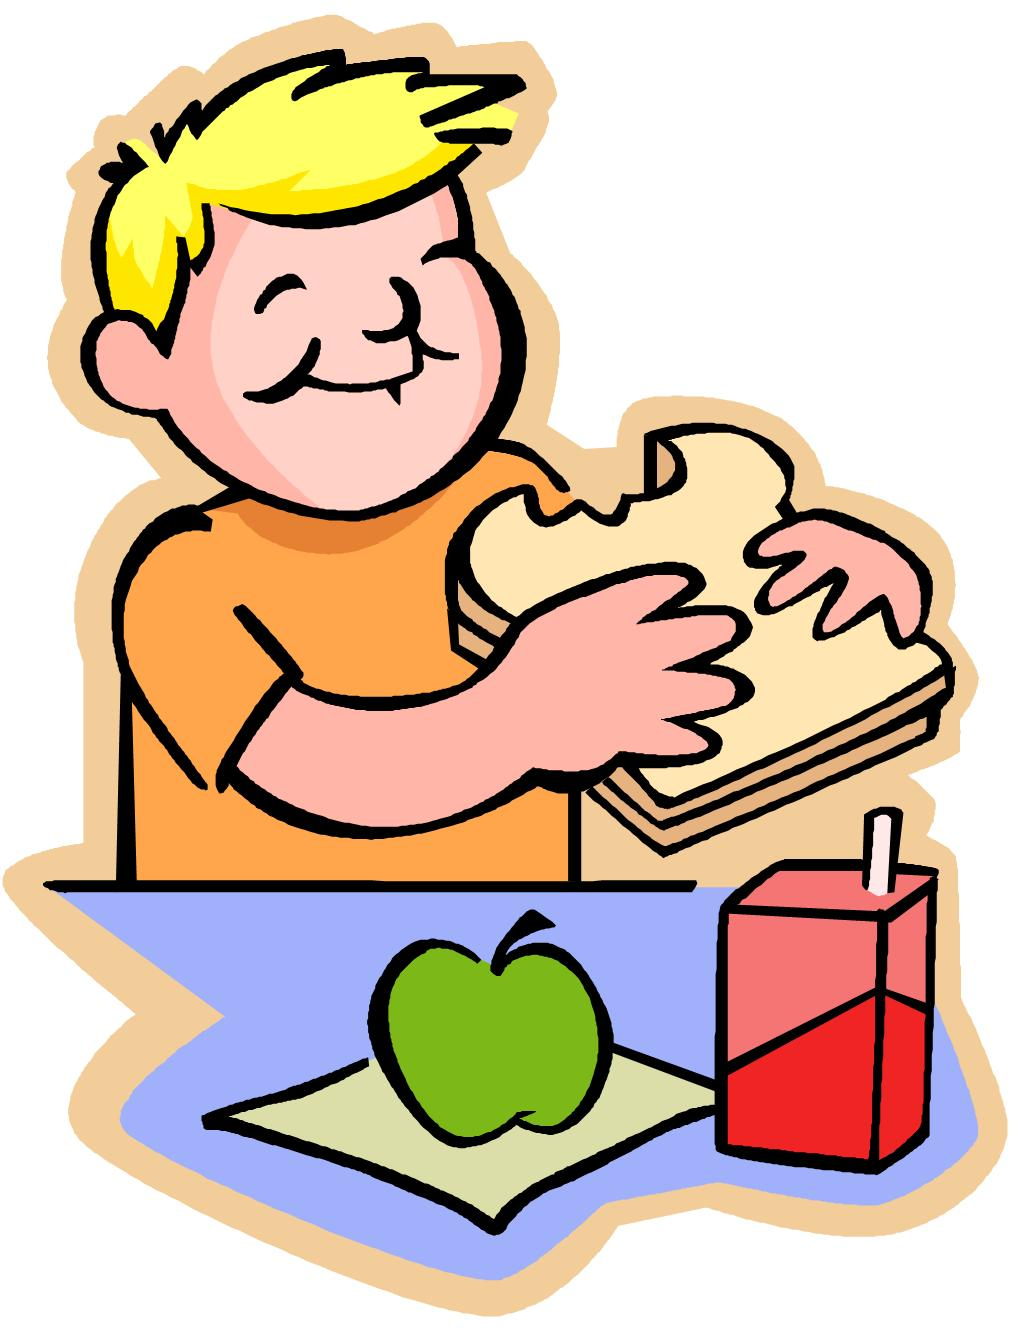 Lunch students go clipart - Clip Art Lunch